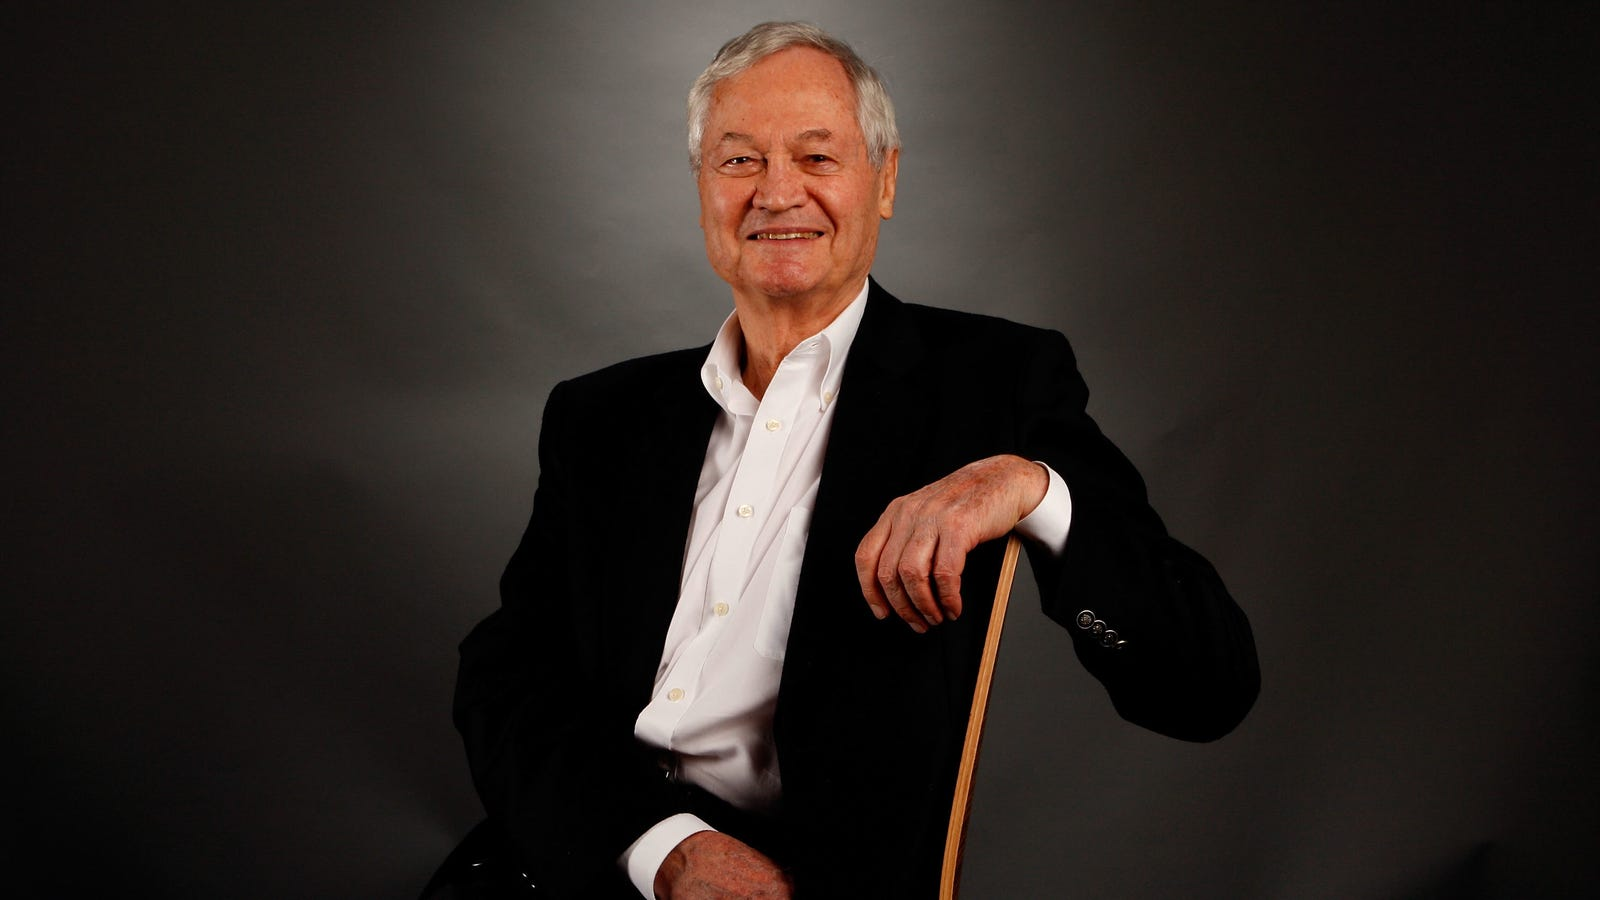 Roger Corman sells the rights to 270 of his films to Shout! Factory